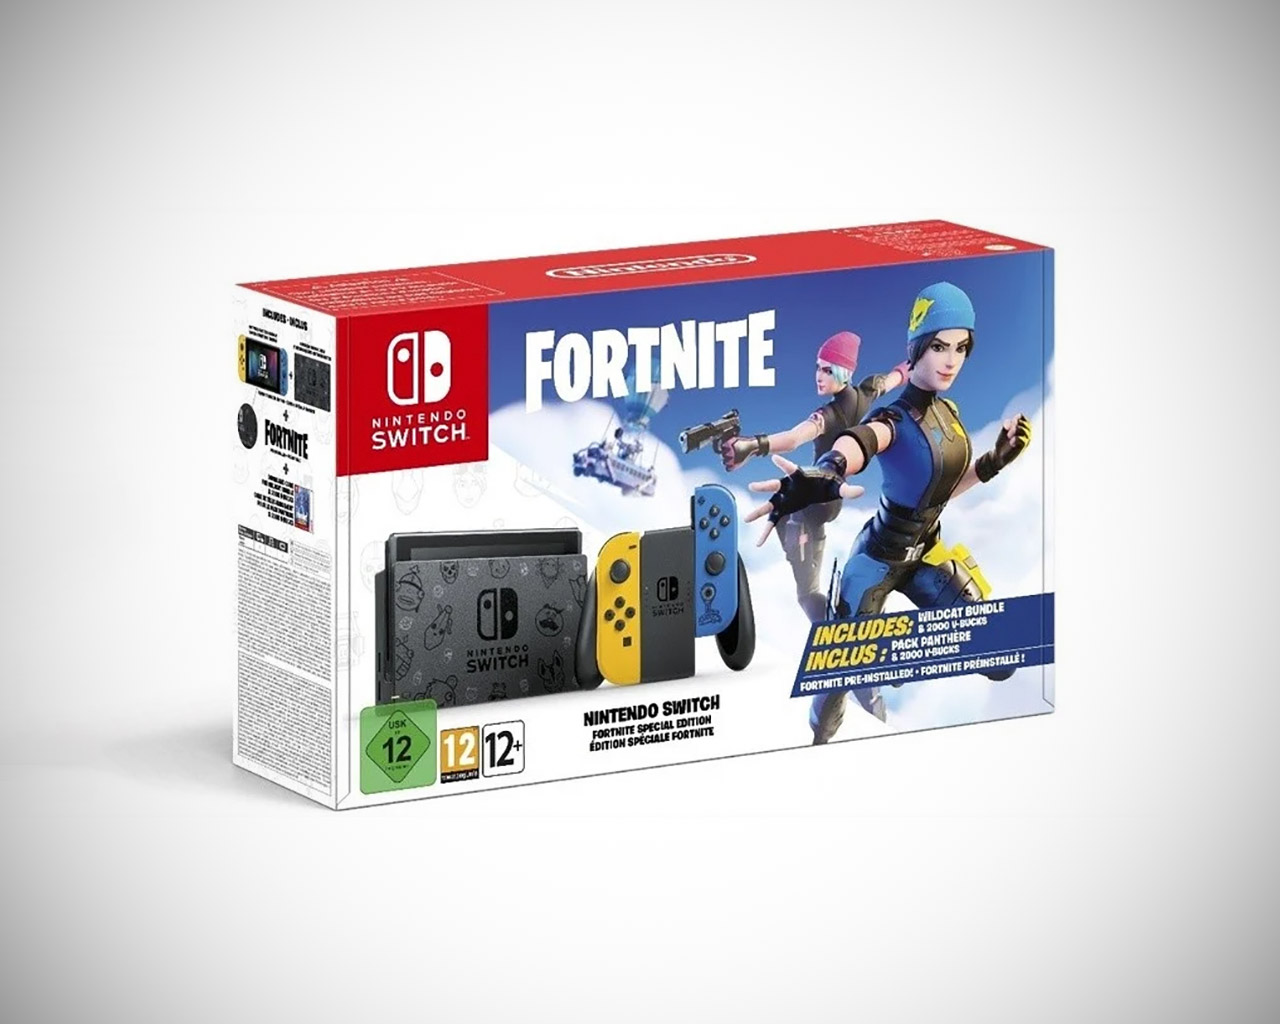 Limited Edition Fortnite Nintendo Switch Bundle Console